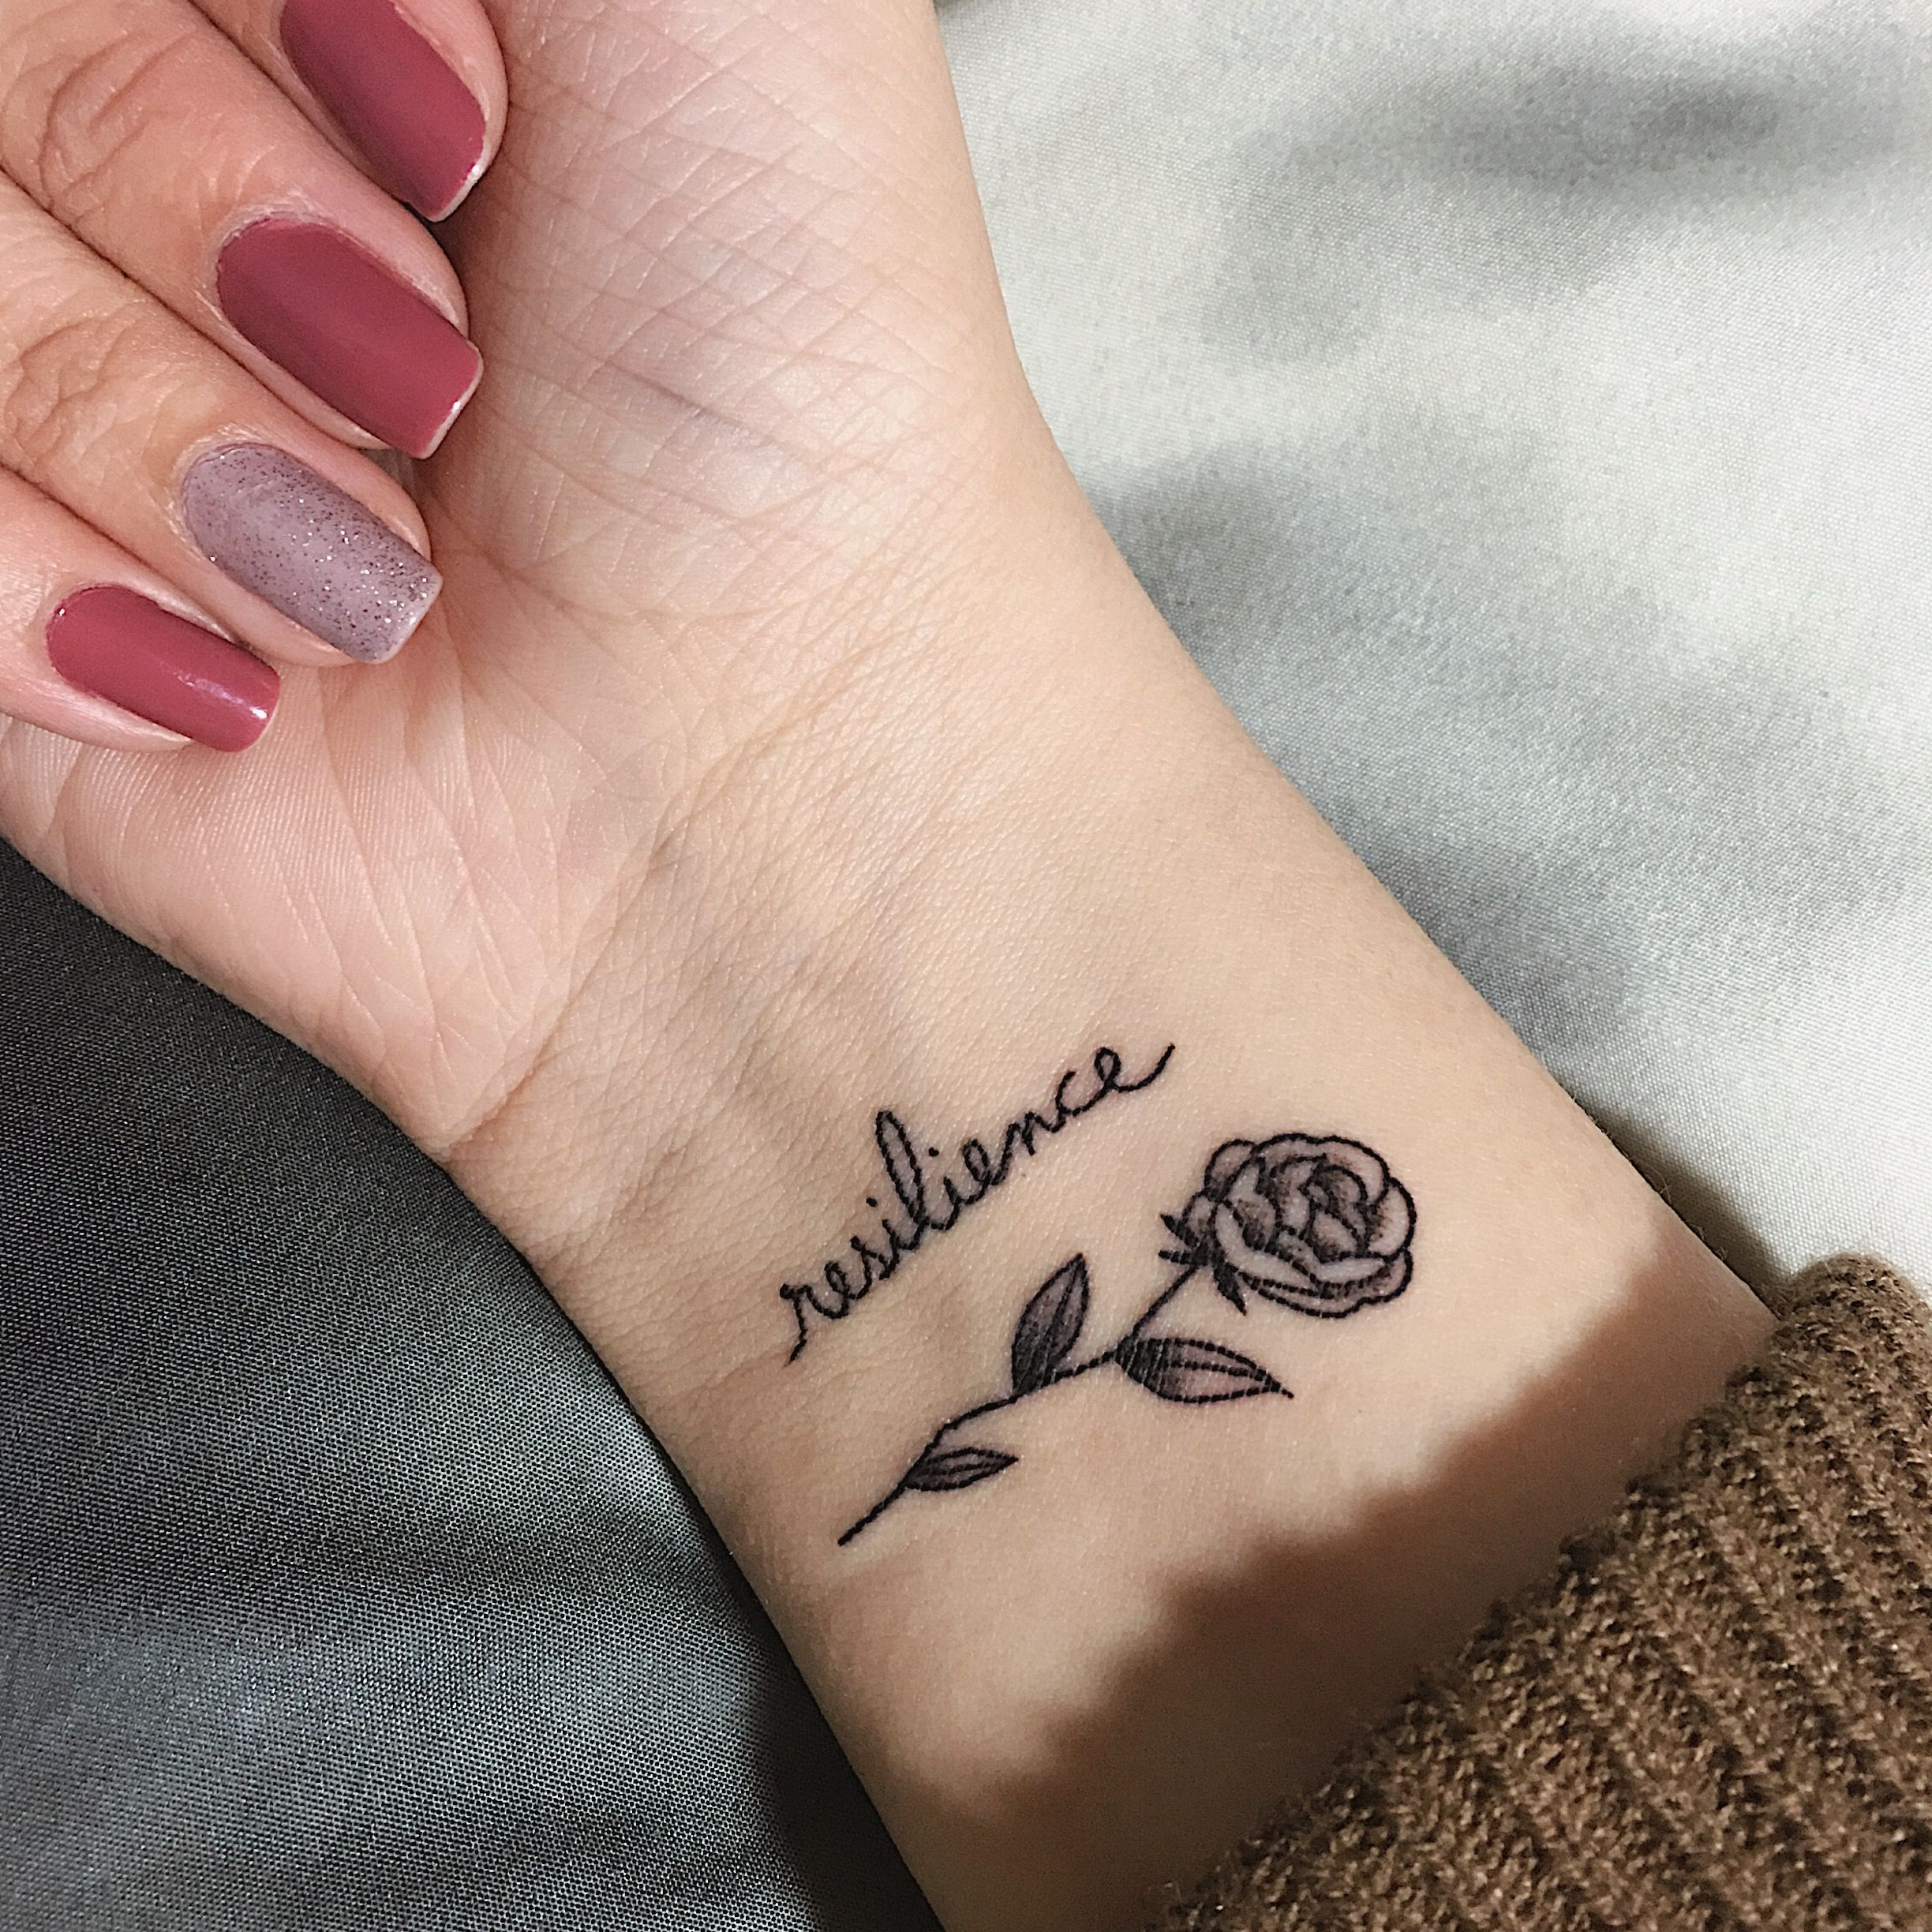 Tattoo Ideas Growth: Tattoos, Tattoo Designs, Wrist Tattoos